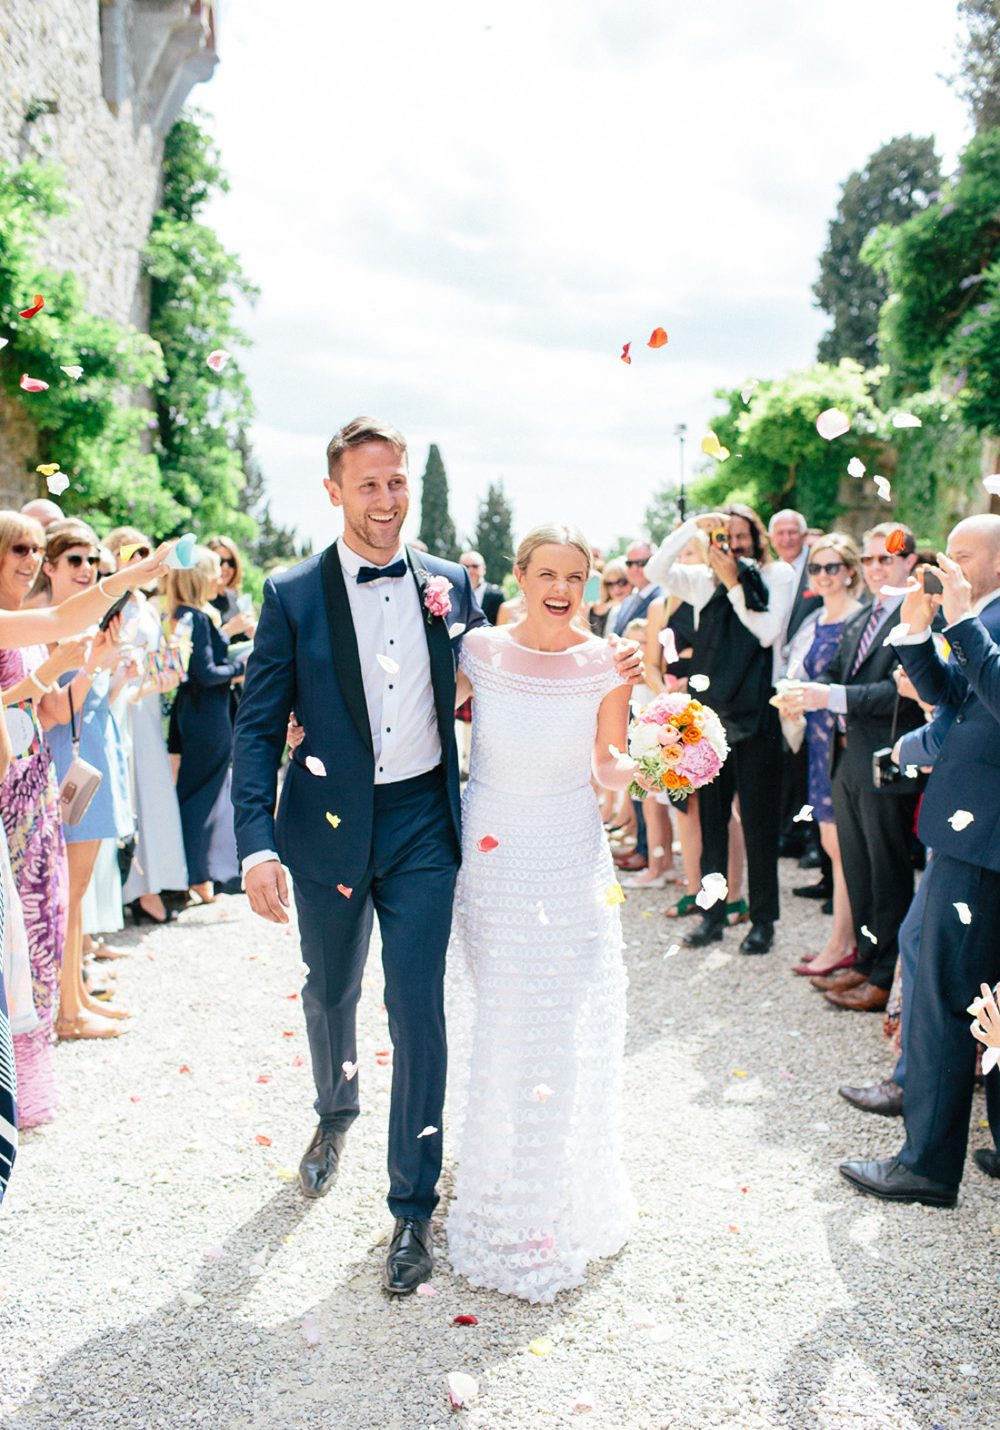 Tuscany-Castello-di-Vincigliata-Fiesole-Wedding-Kate-Mike-359